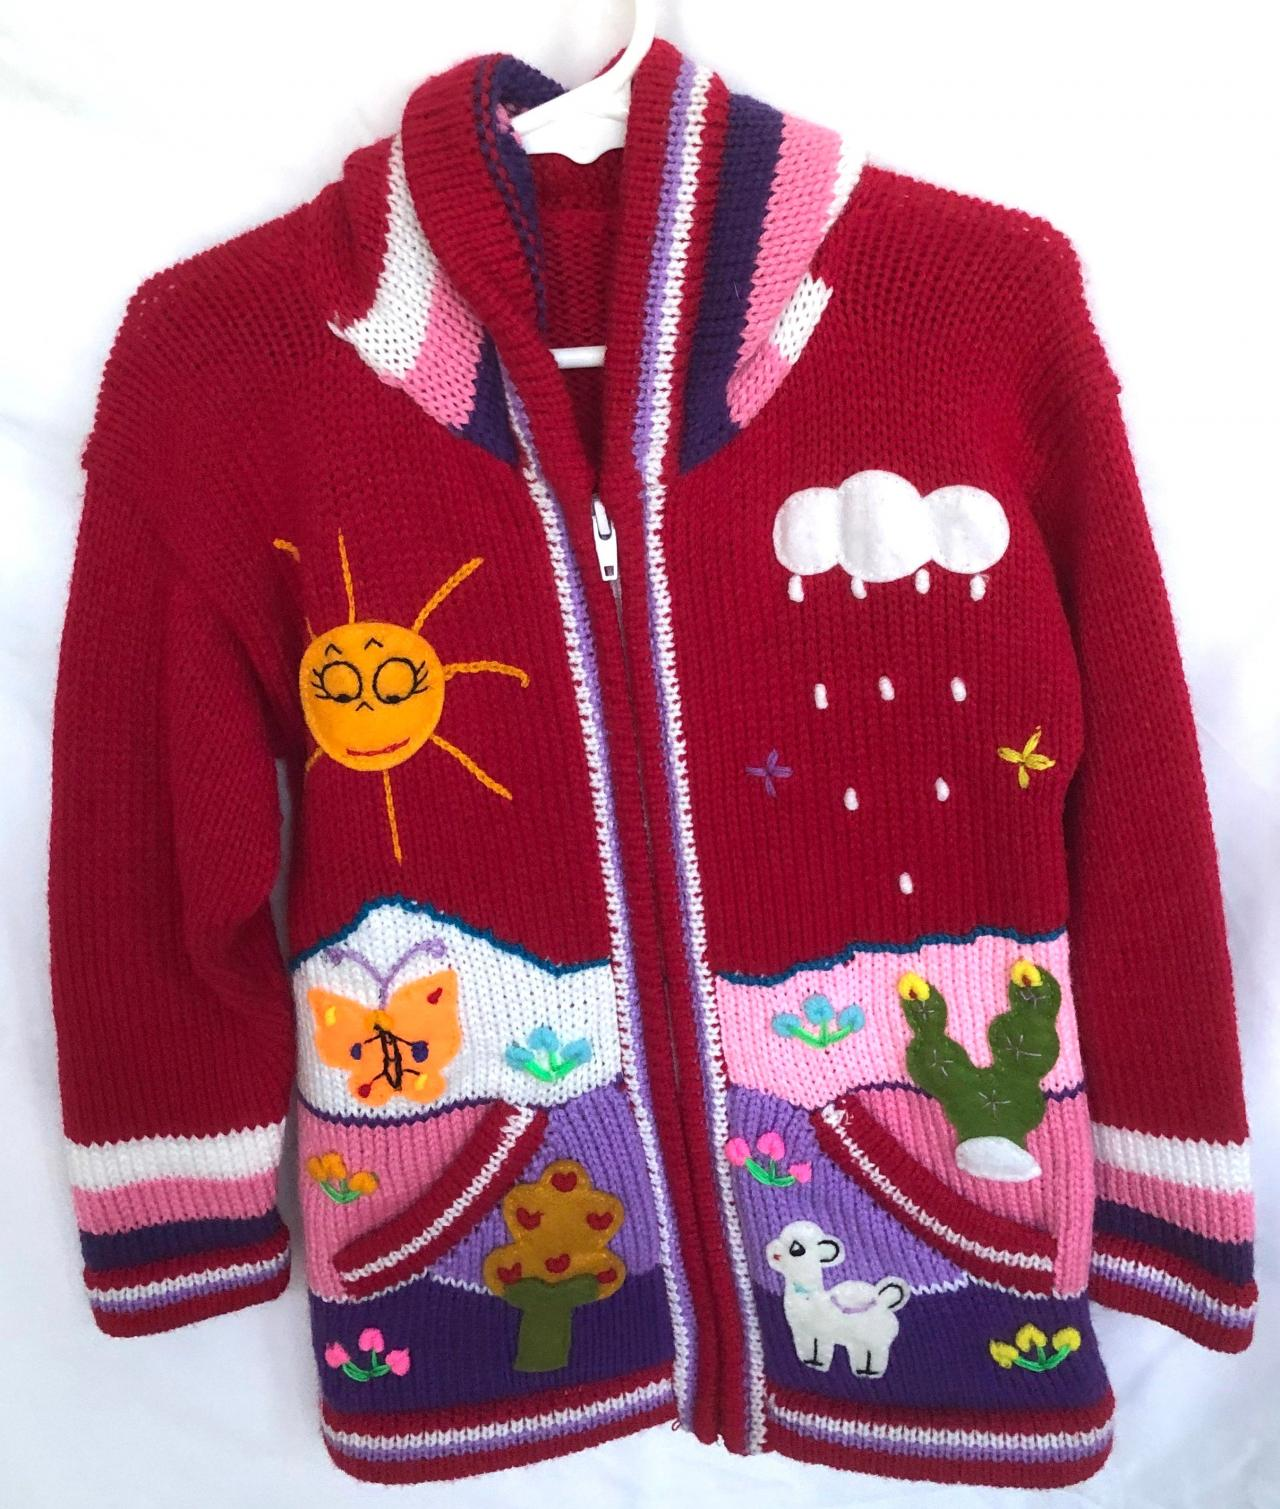 Size 8 Red Hooded Jacket,Girls Jacket,Handmade Jacket, Knitwear Jacket, Zipper Jacket, Long Sleeve Jacket, Children Jacket, Llama Jacket